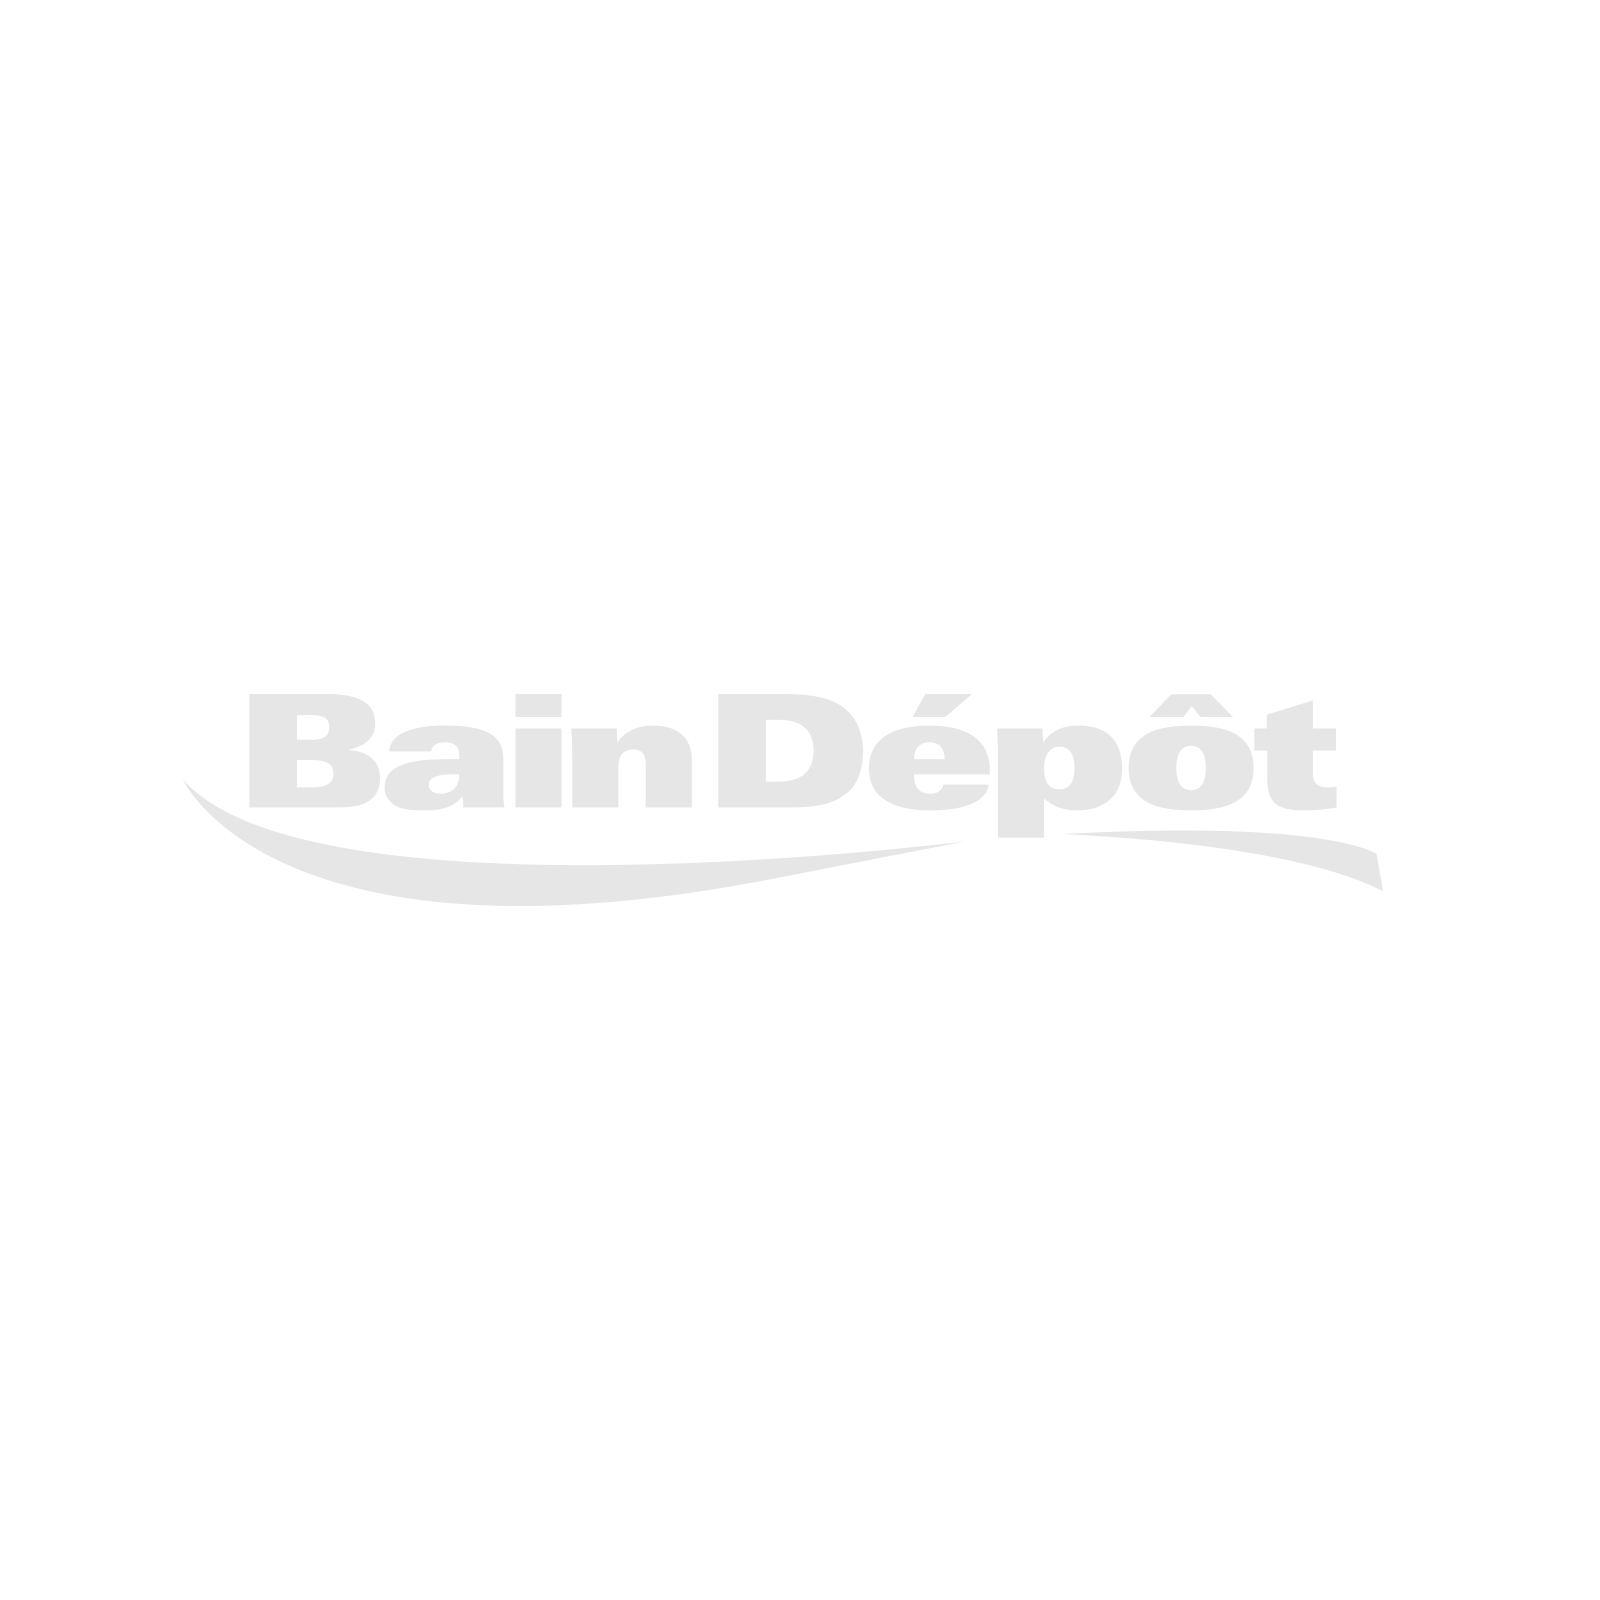 Chrome single-hole waterfall bathroom sink faucet with pop-up